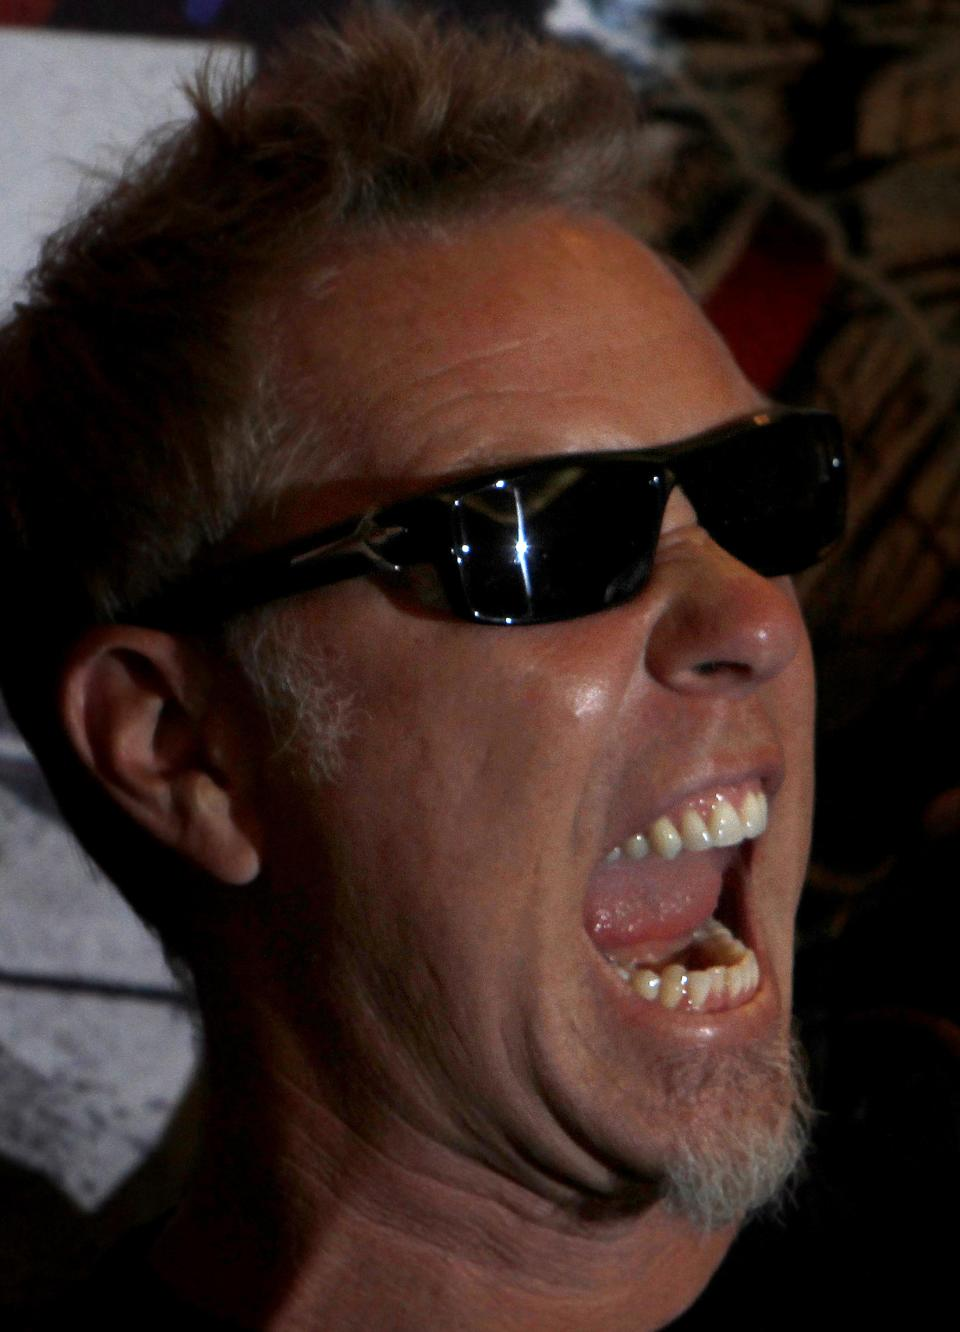 Metallica's lead vocalist James Hetfield poses at a photocall before his band's first of eight concert performances in Mexico City, Saturday, July 28, 2012.  The heavy metal band added two more tour dates to their Mexico City run after a record six sold out August shows. (AP Photo/Marco Ugarte)